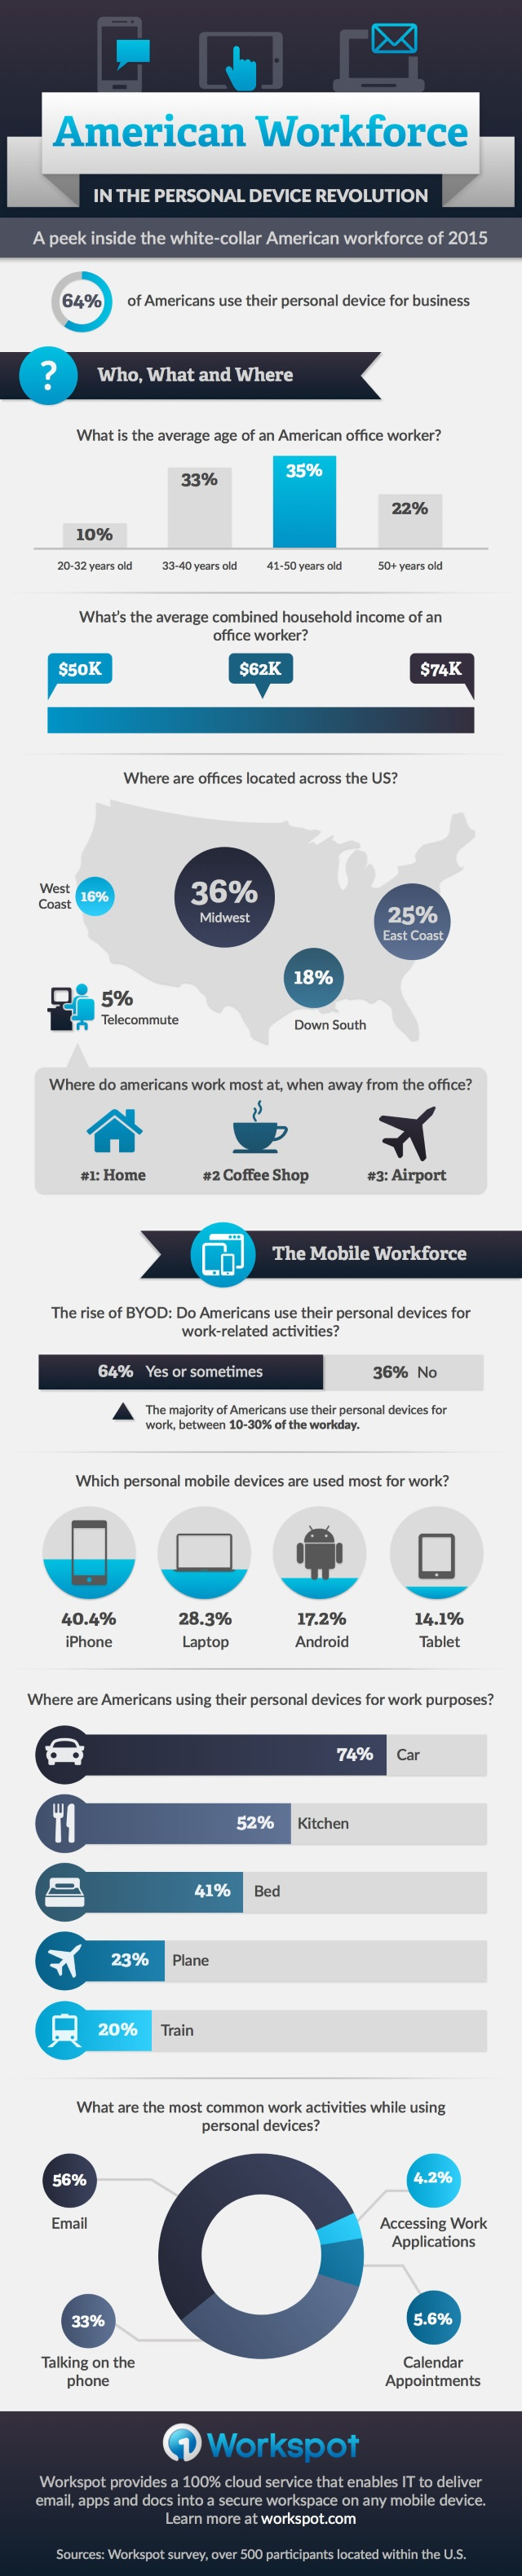 Workspot infographic